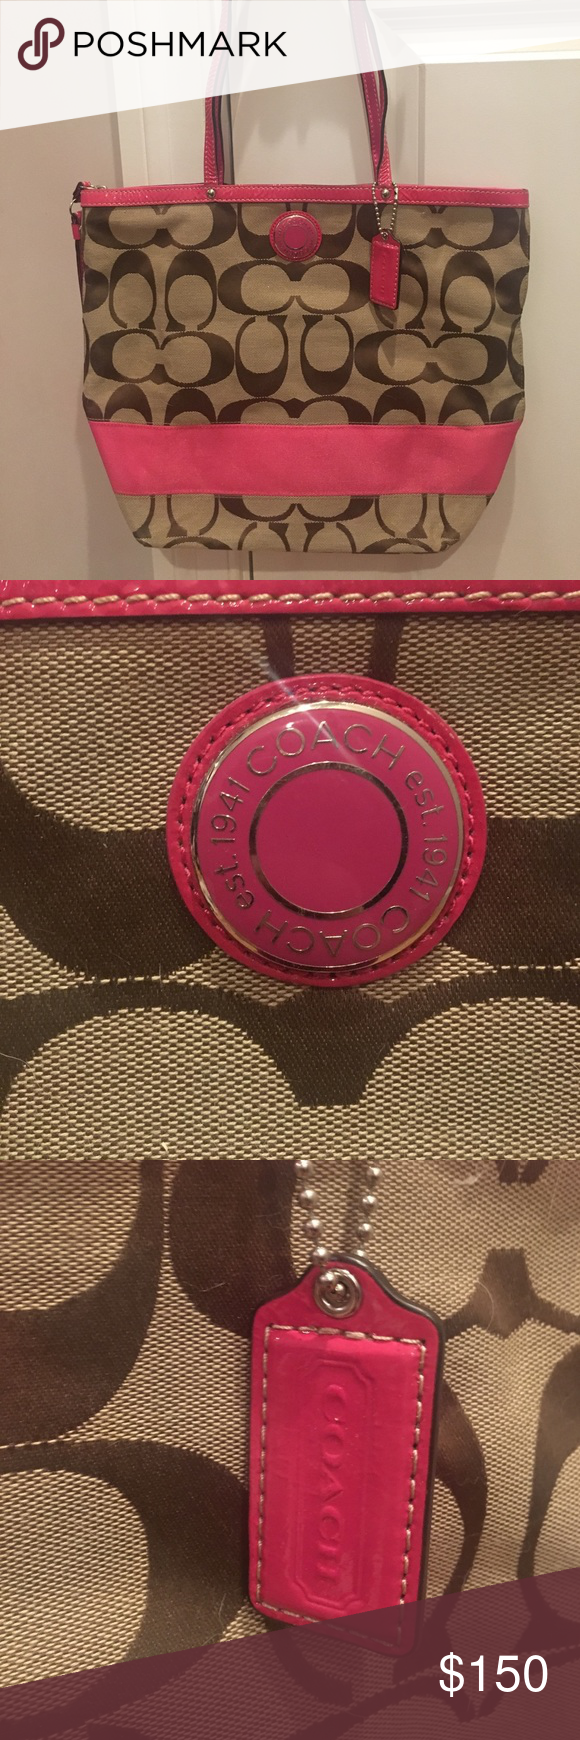 Pink Tan and Brown Coach Bag Genuine Coach bag with dark pink accents and signature logo throughout. Very spacious and in great condition. Straps need to be straightened back out from storage and there are a few small stains on the bottom of the inside of the bag. Coach Bags Totes